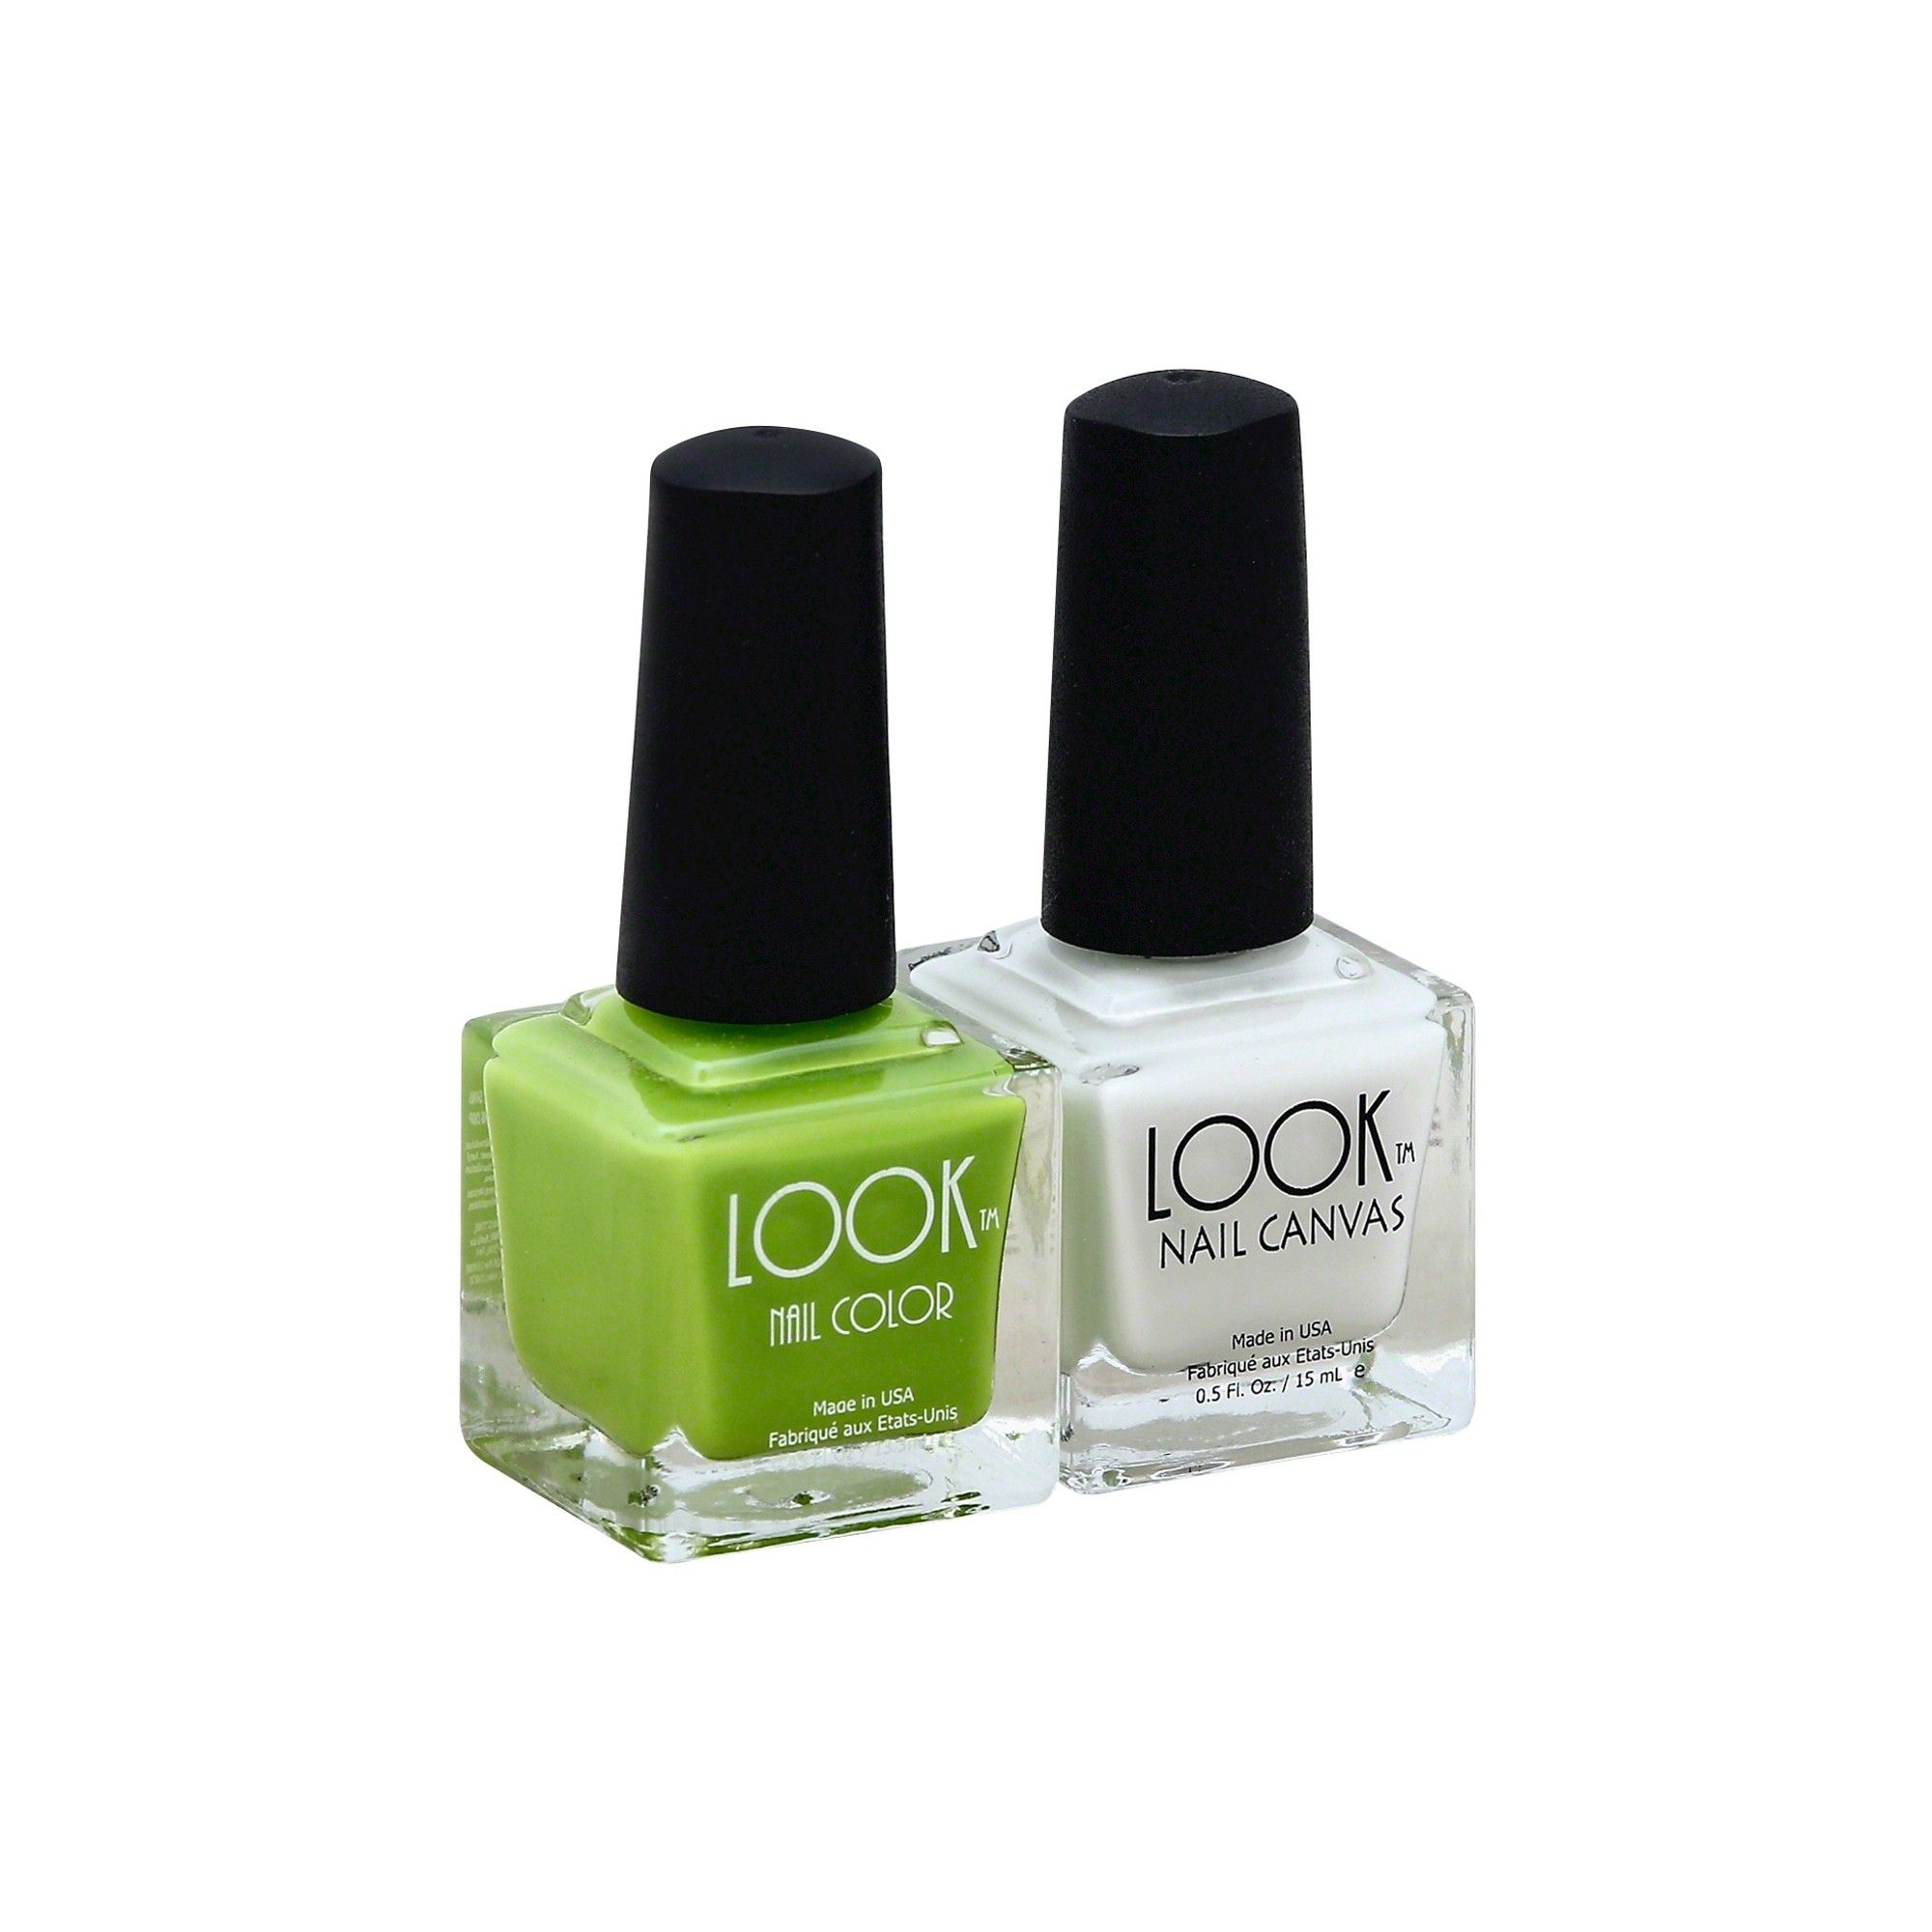 Look Nail Color Cruelty Free & Vegan Nail Polish Set Lime